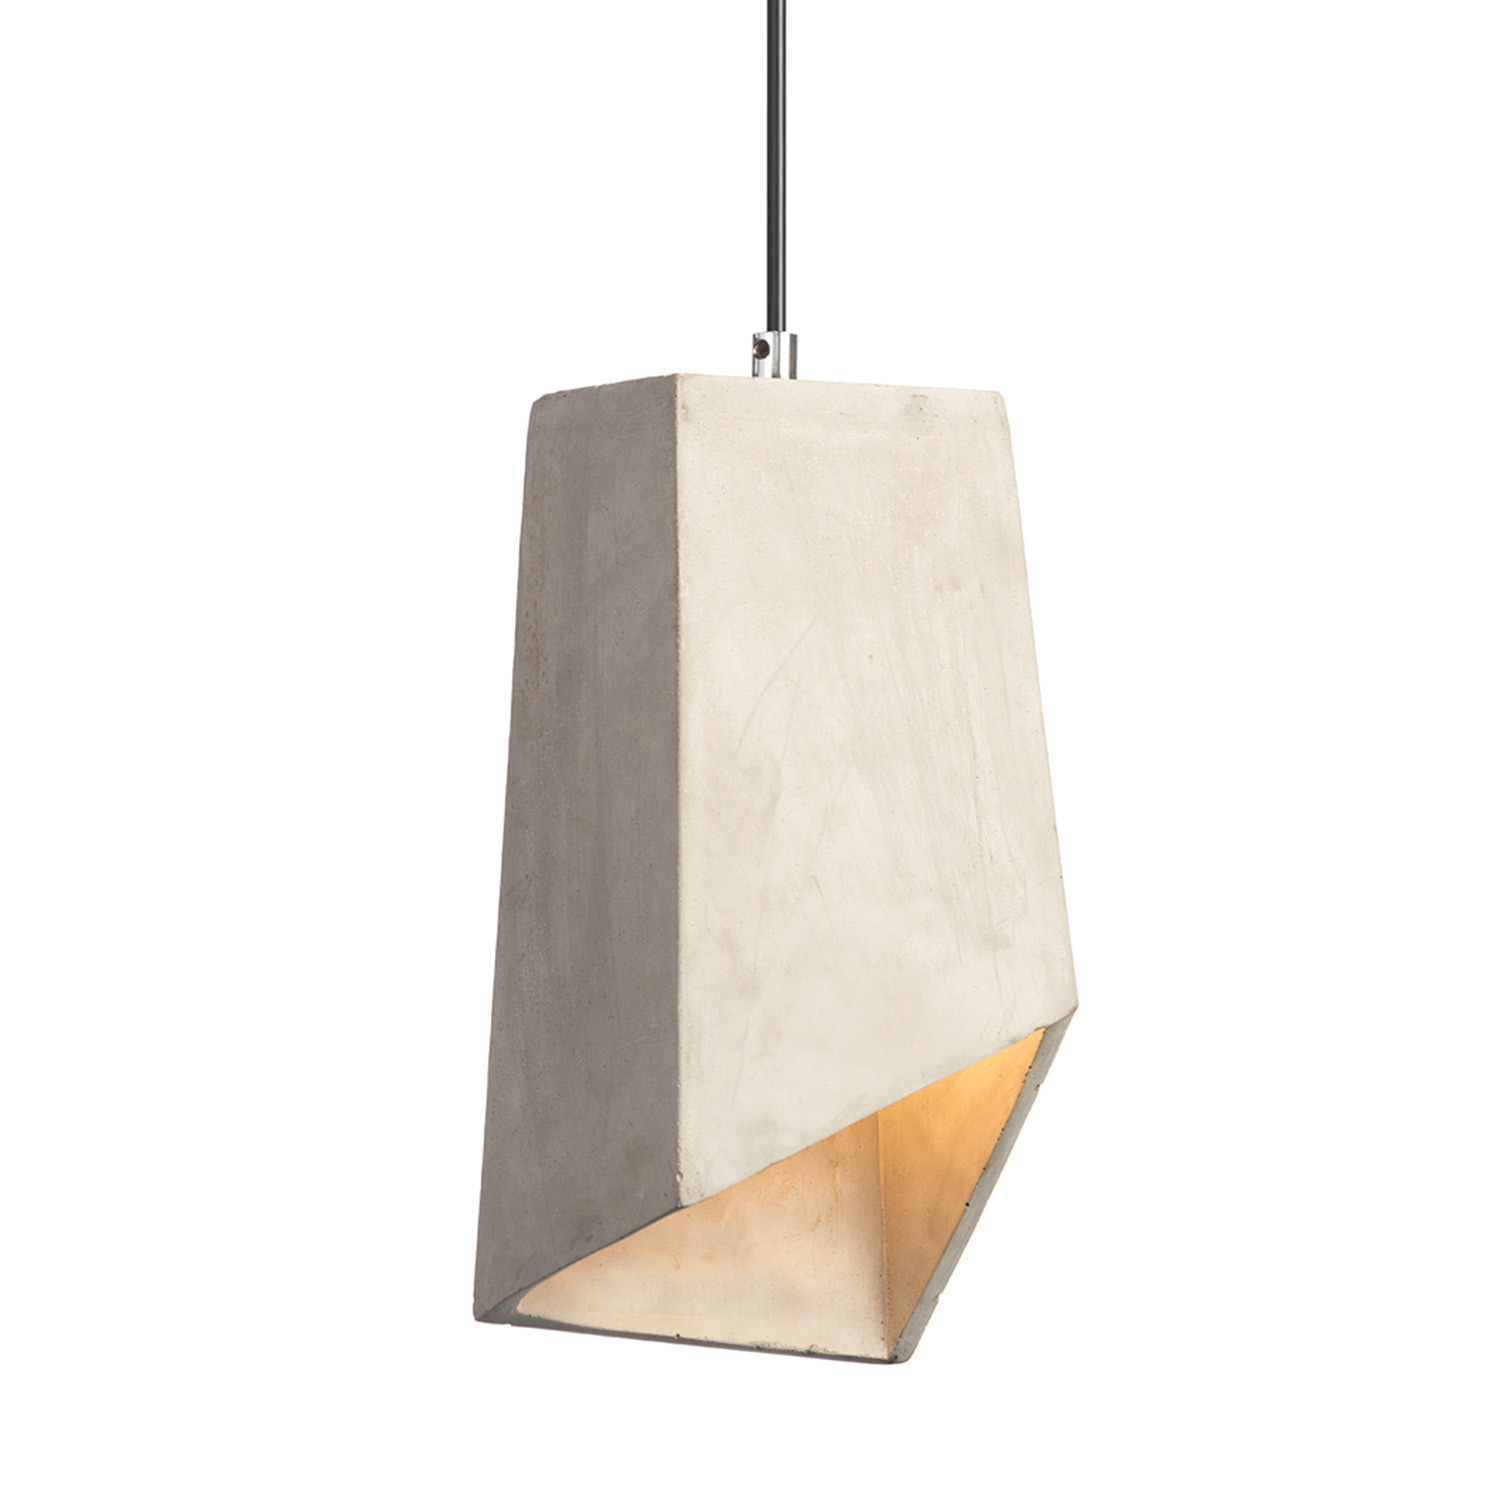 enamel concrete pendant flat new light lighting of white house lampshade european